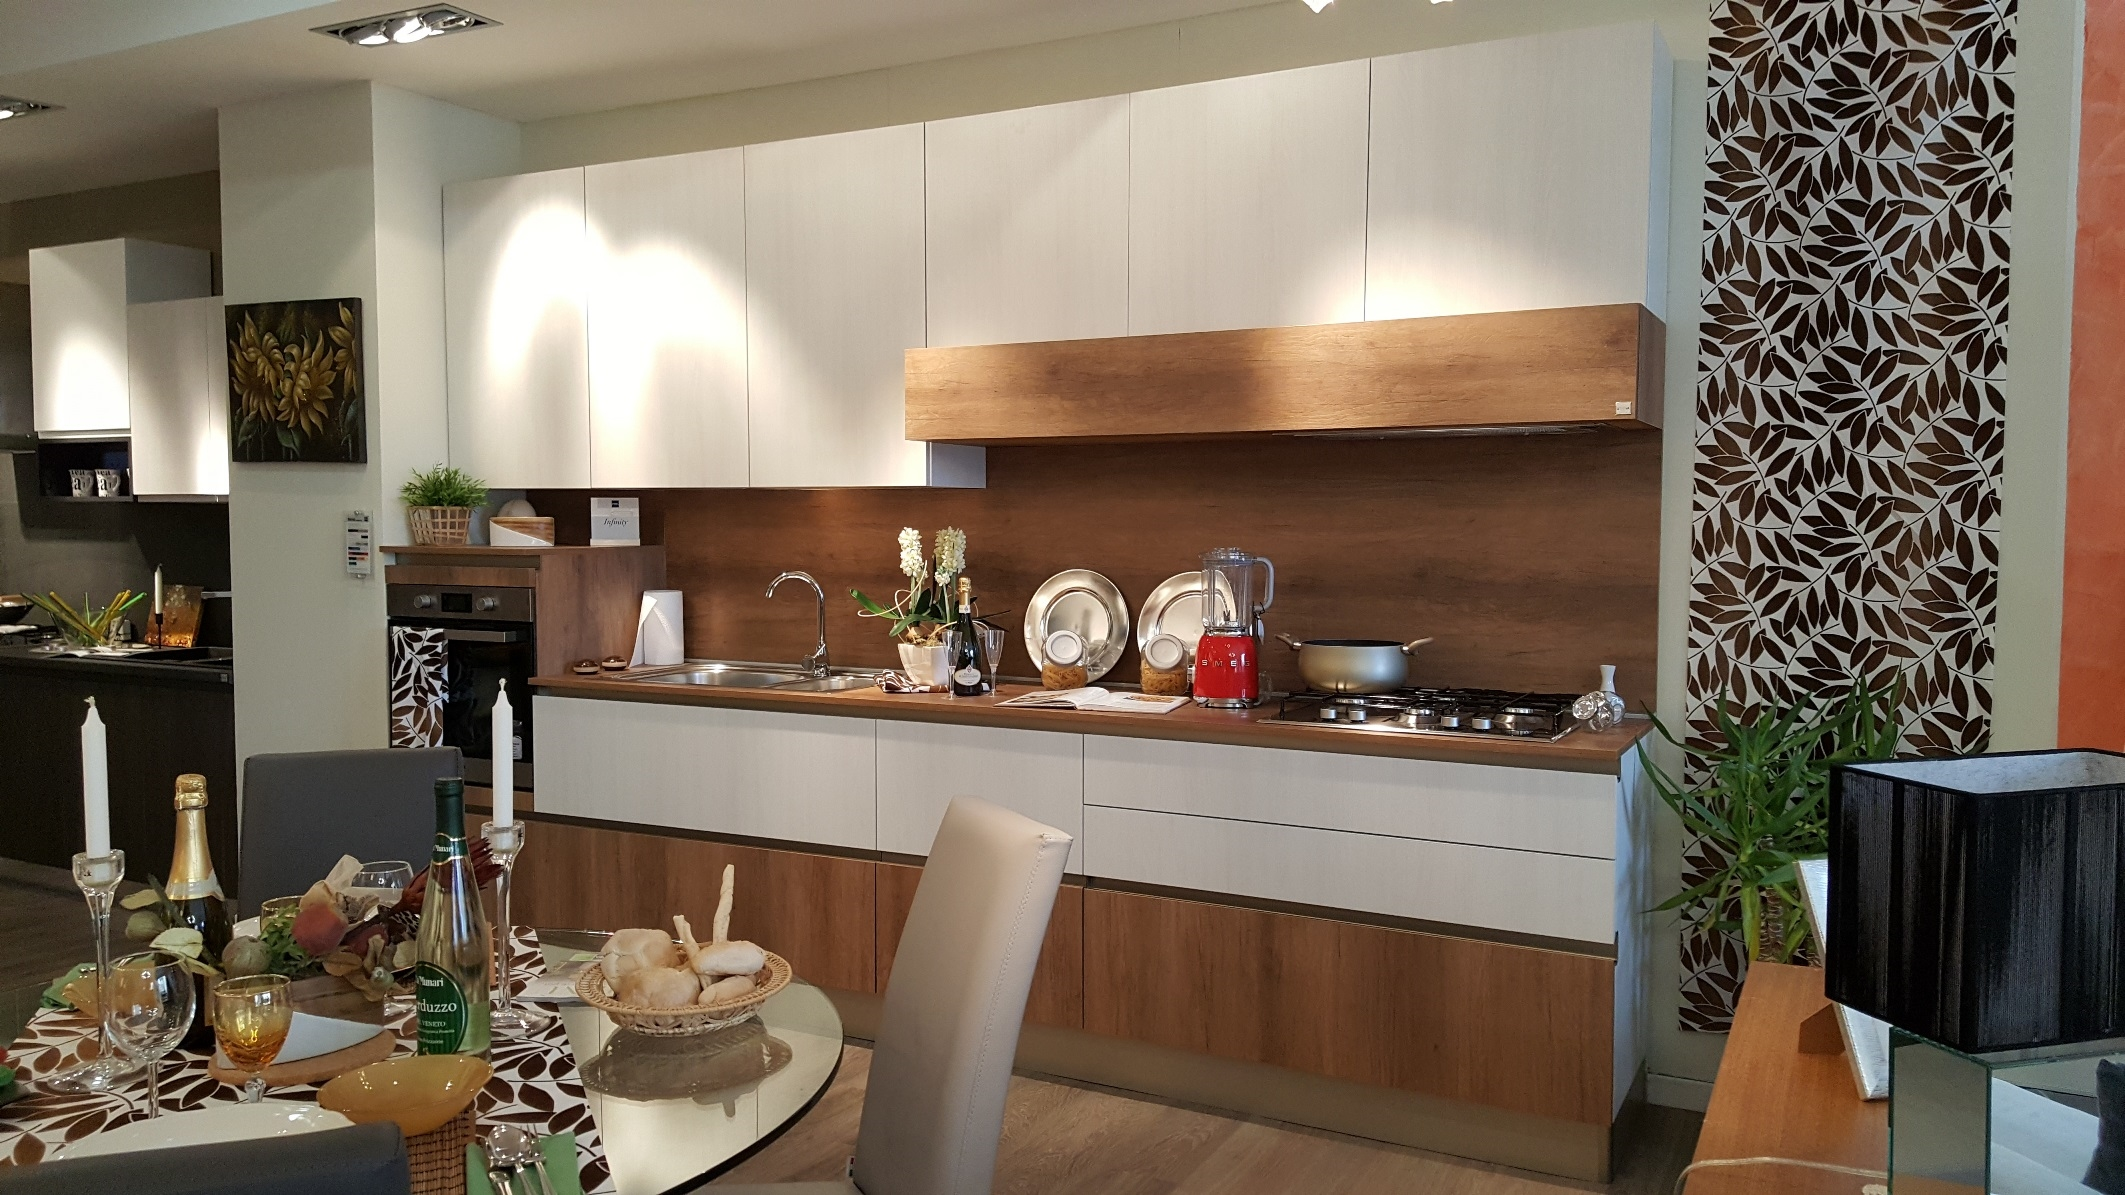 Cucina stosa cucine infinity e infinity diagonal stosa for Cucine outlet